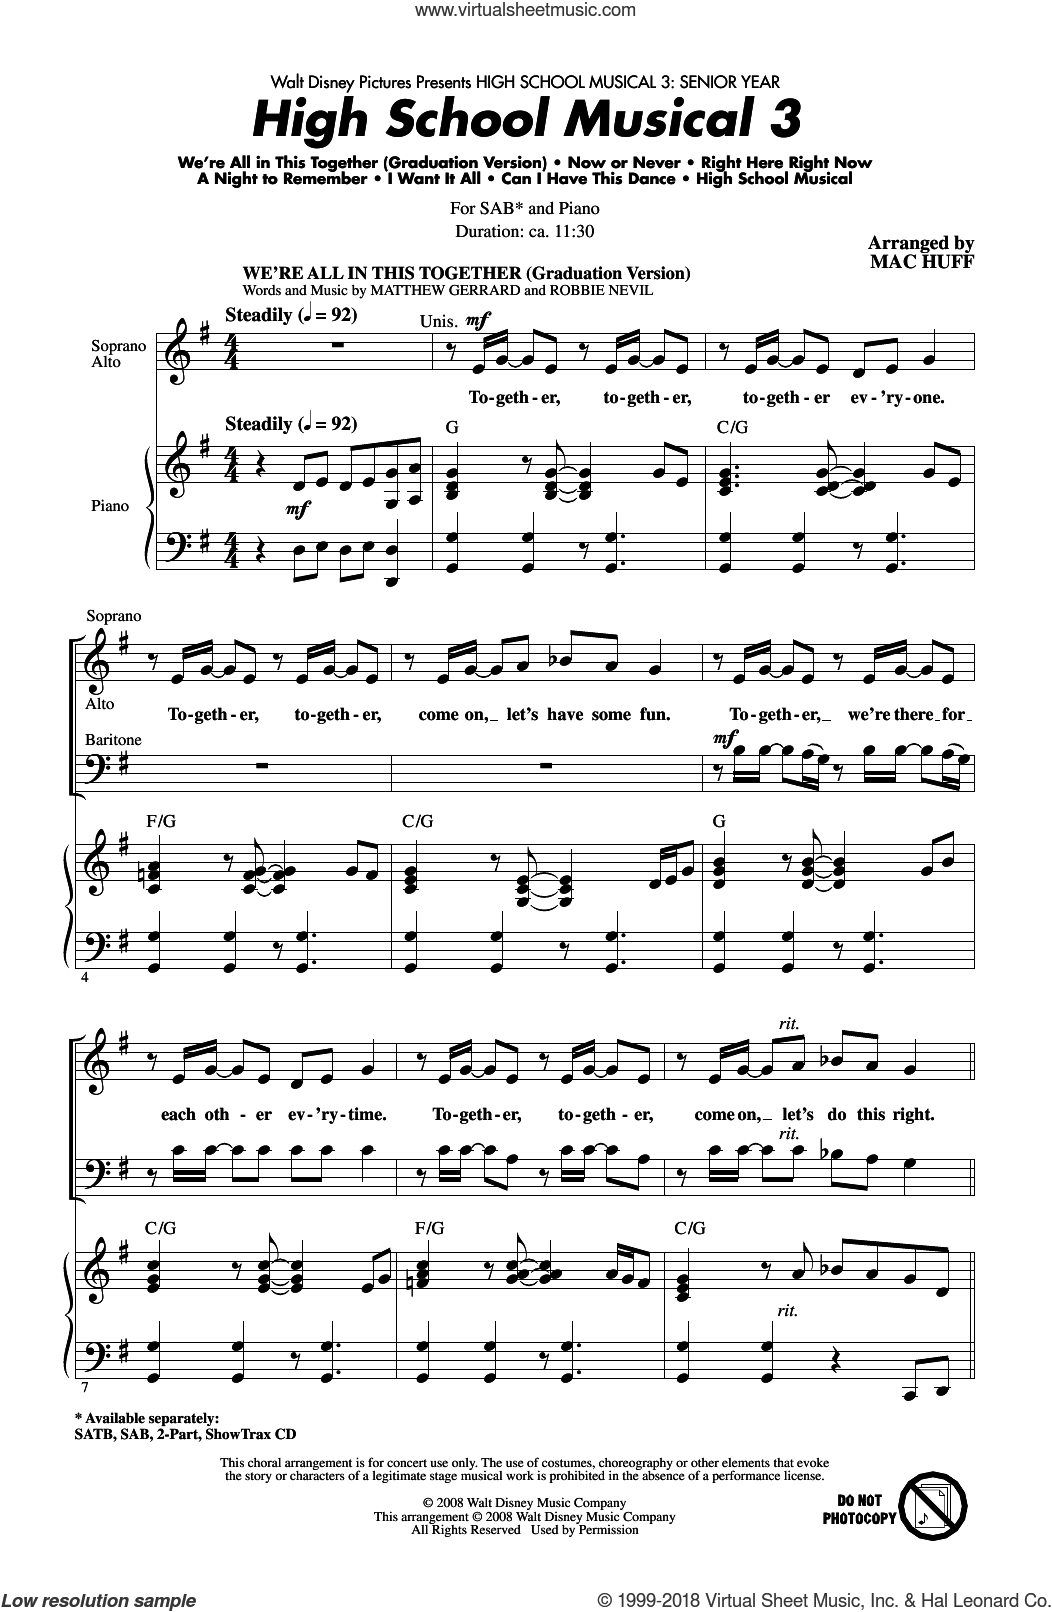 High School Musical 3 (Choral Medley) sheet music for choir (SAB) by Mac Huff, Matthew Gerrard and Robbie Nevil. Score Image Preview.